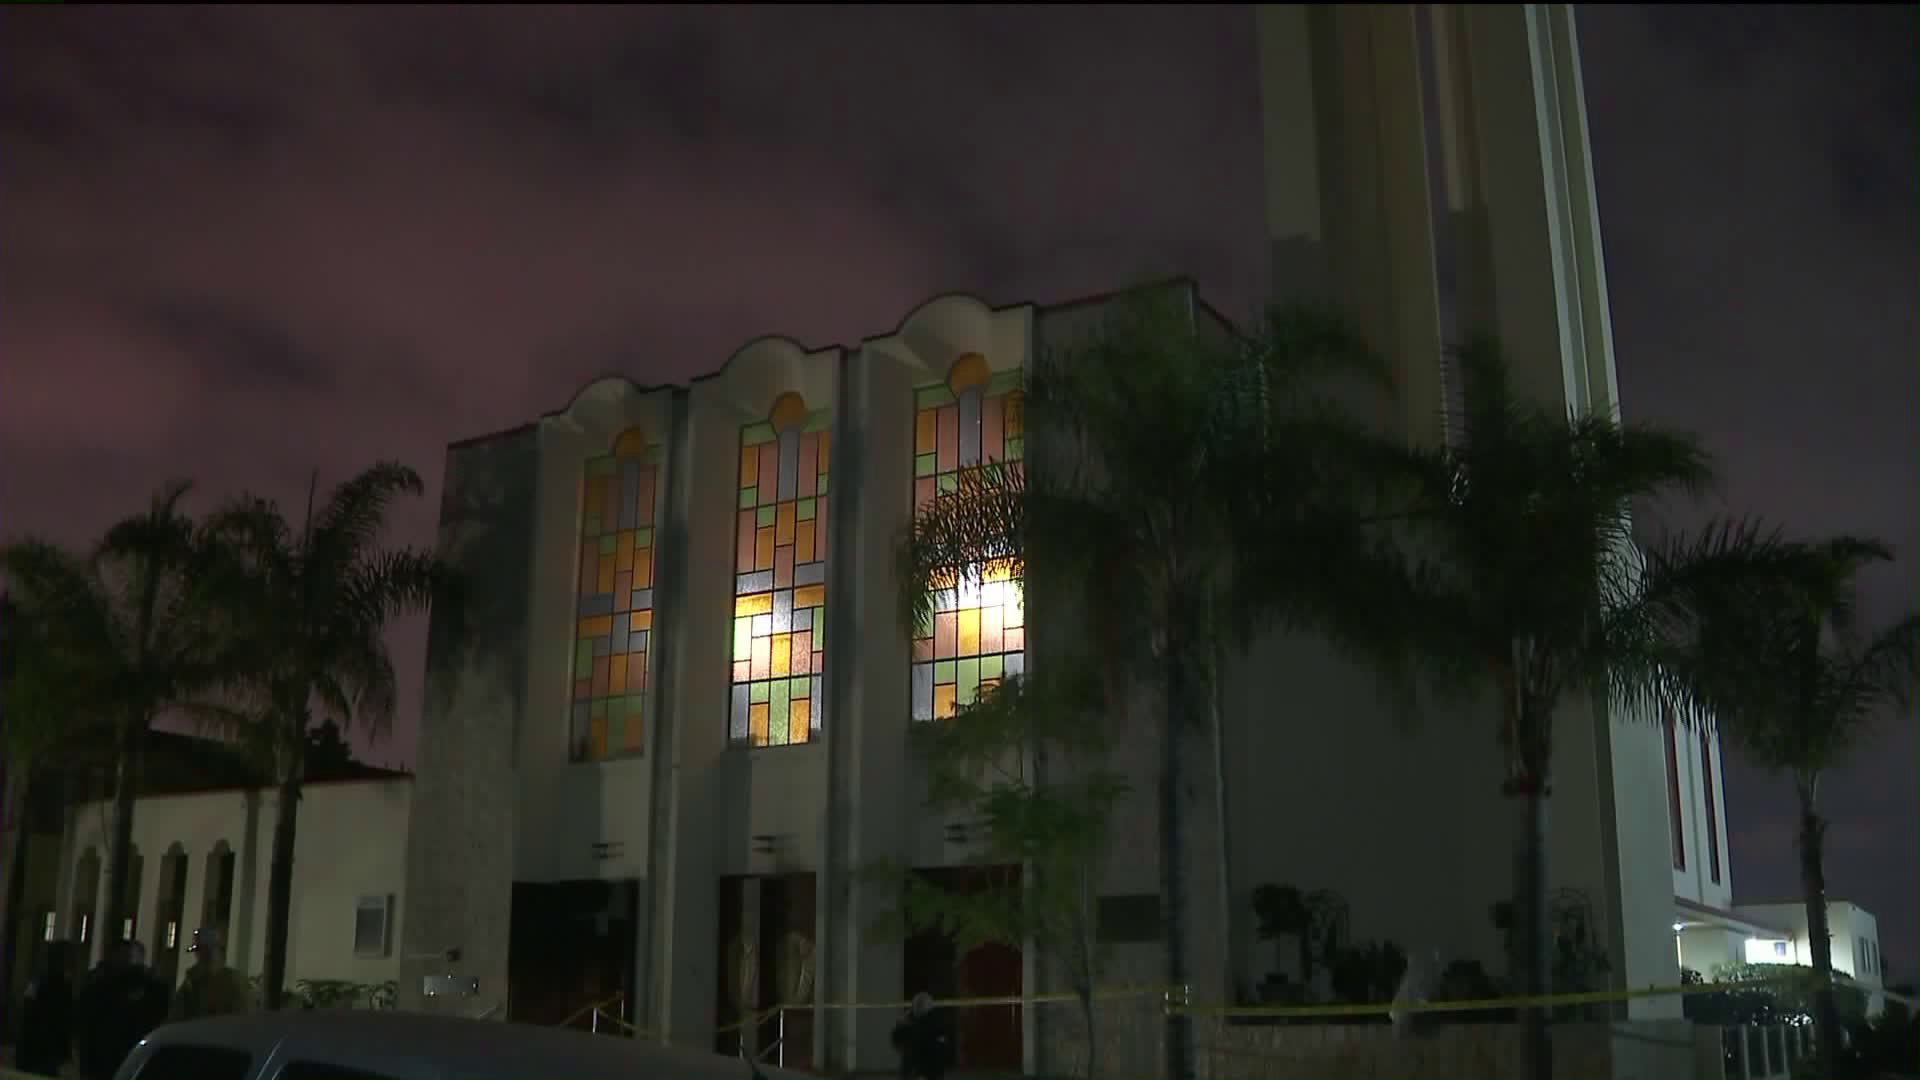 A Catholic Church in Boyle Heights is seen after it was burned in a fire on Jan. 25, 2018. (Credit: KTLA)